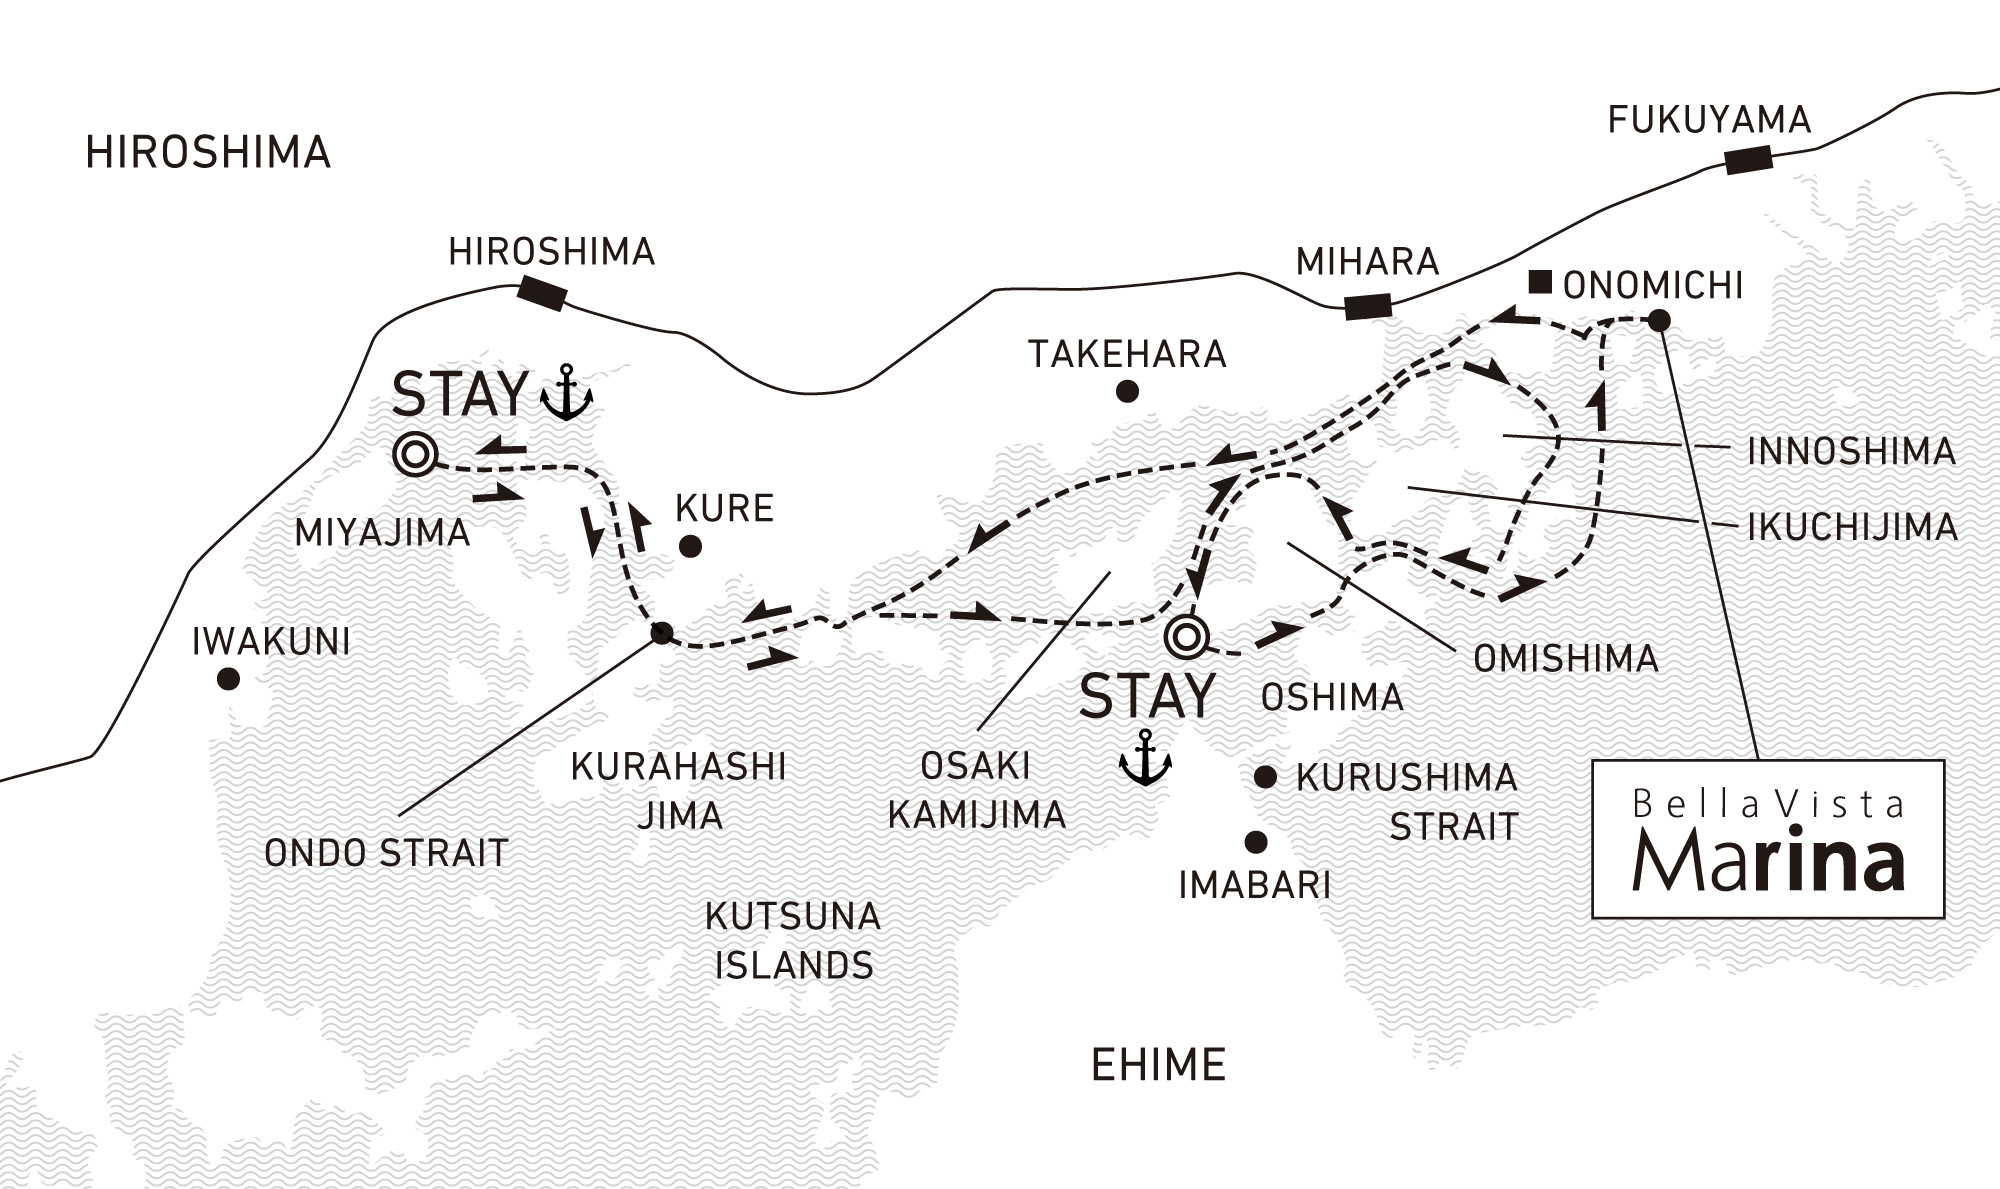 A three-day voyage to delight in Setouchi drifting 2 nights / anchor offshore at Miyajima and Omishima